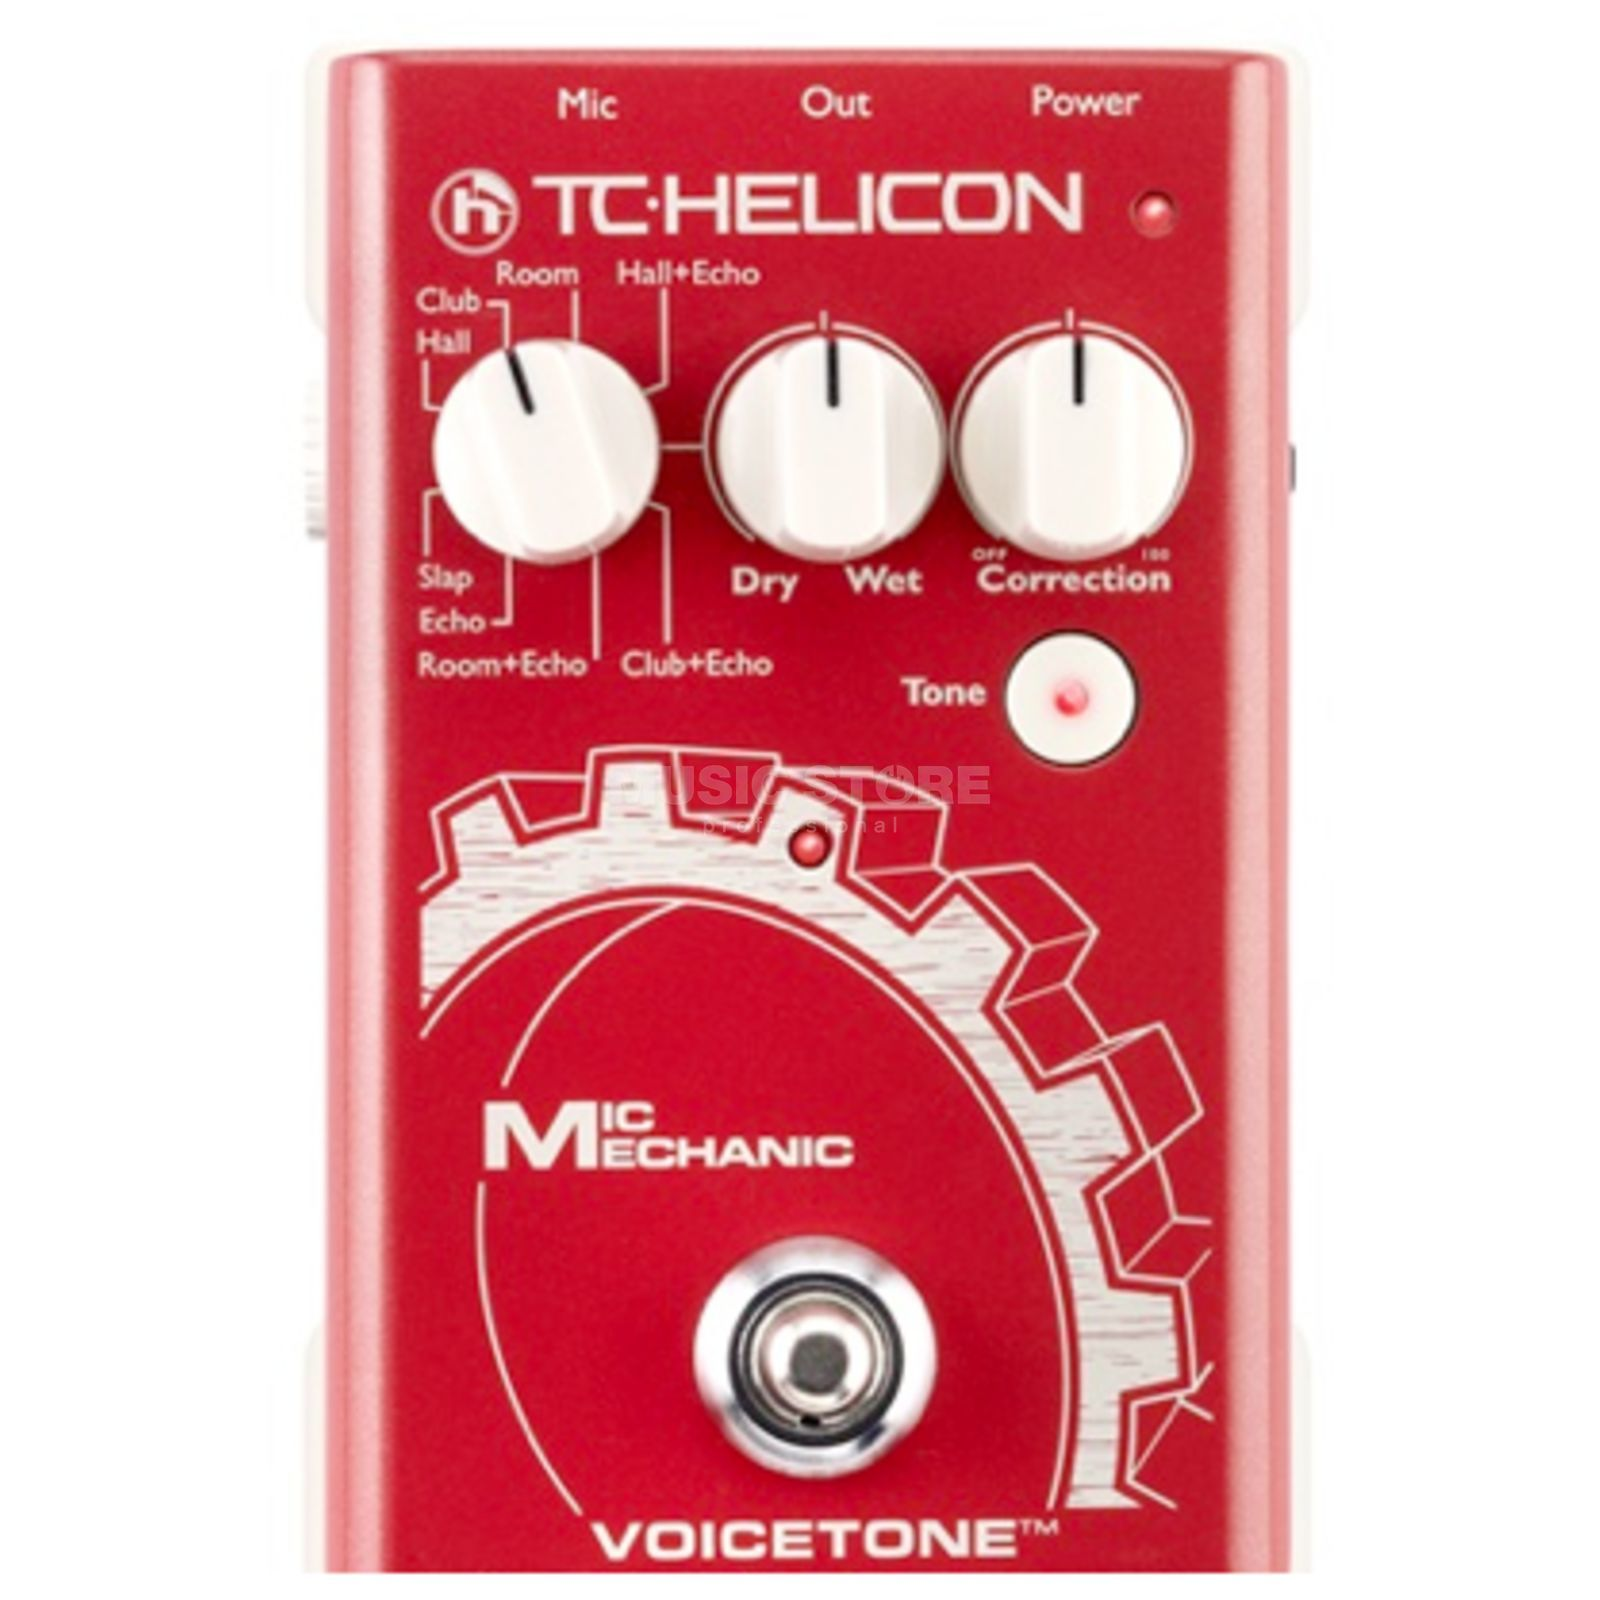 TC-Helicon Mic Mechanic Vocal Toolbox Produktbild